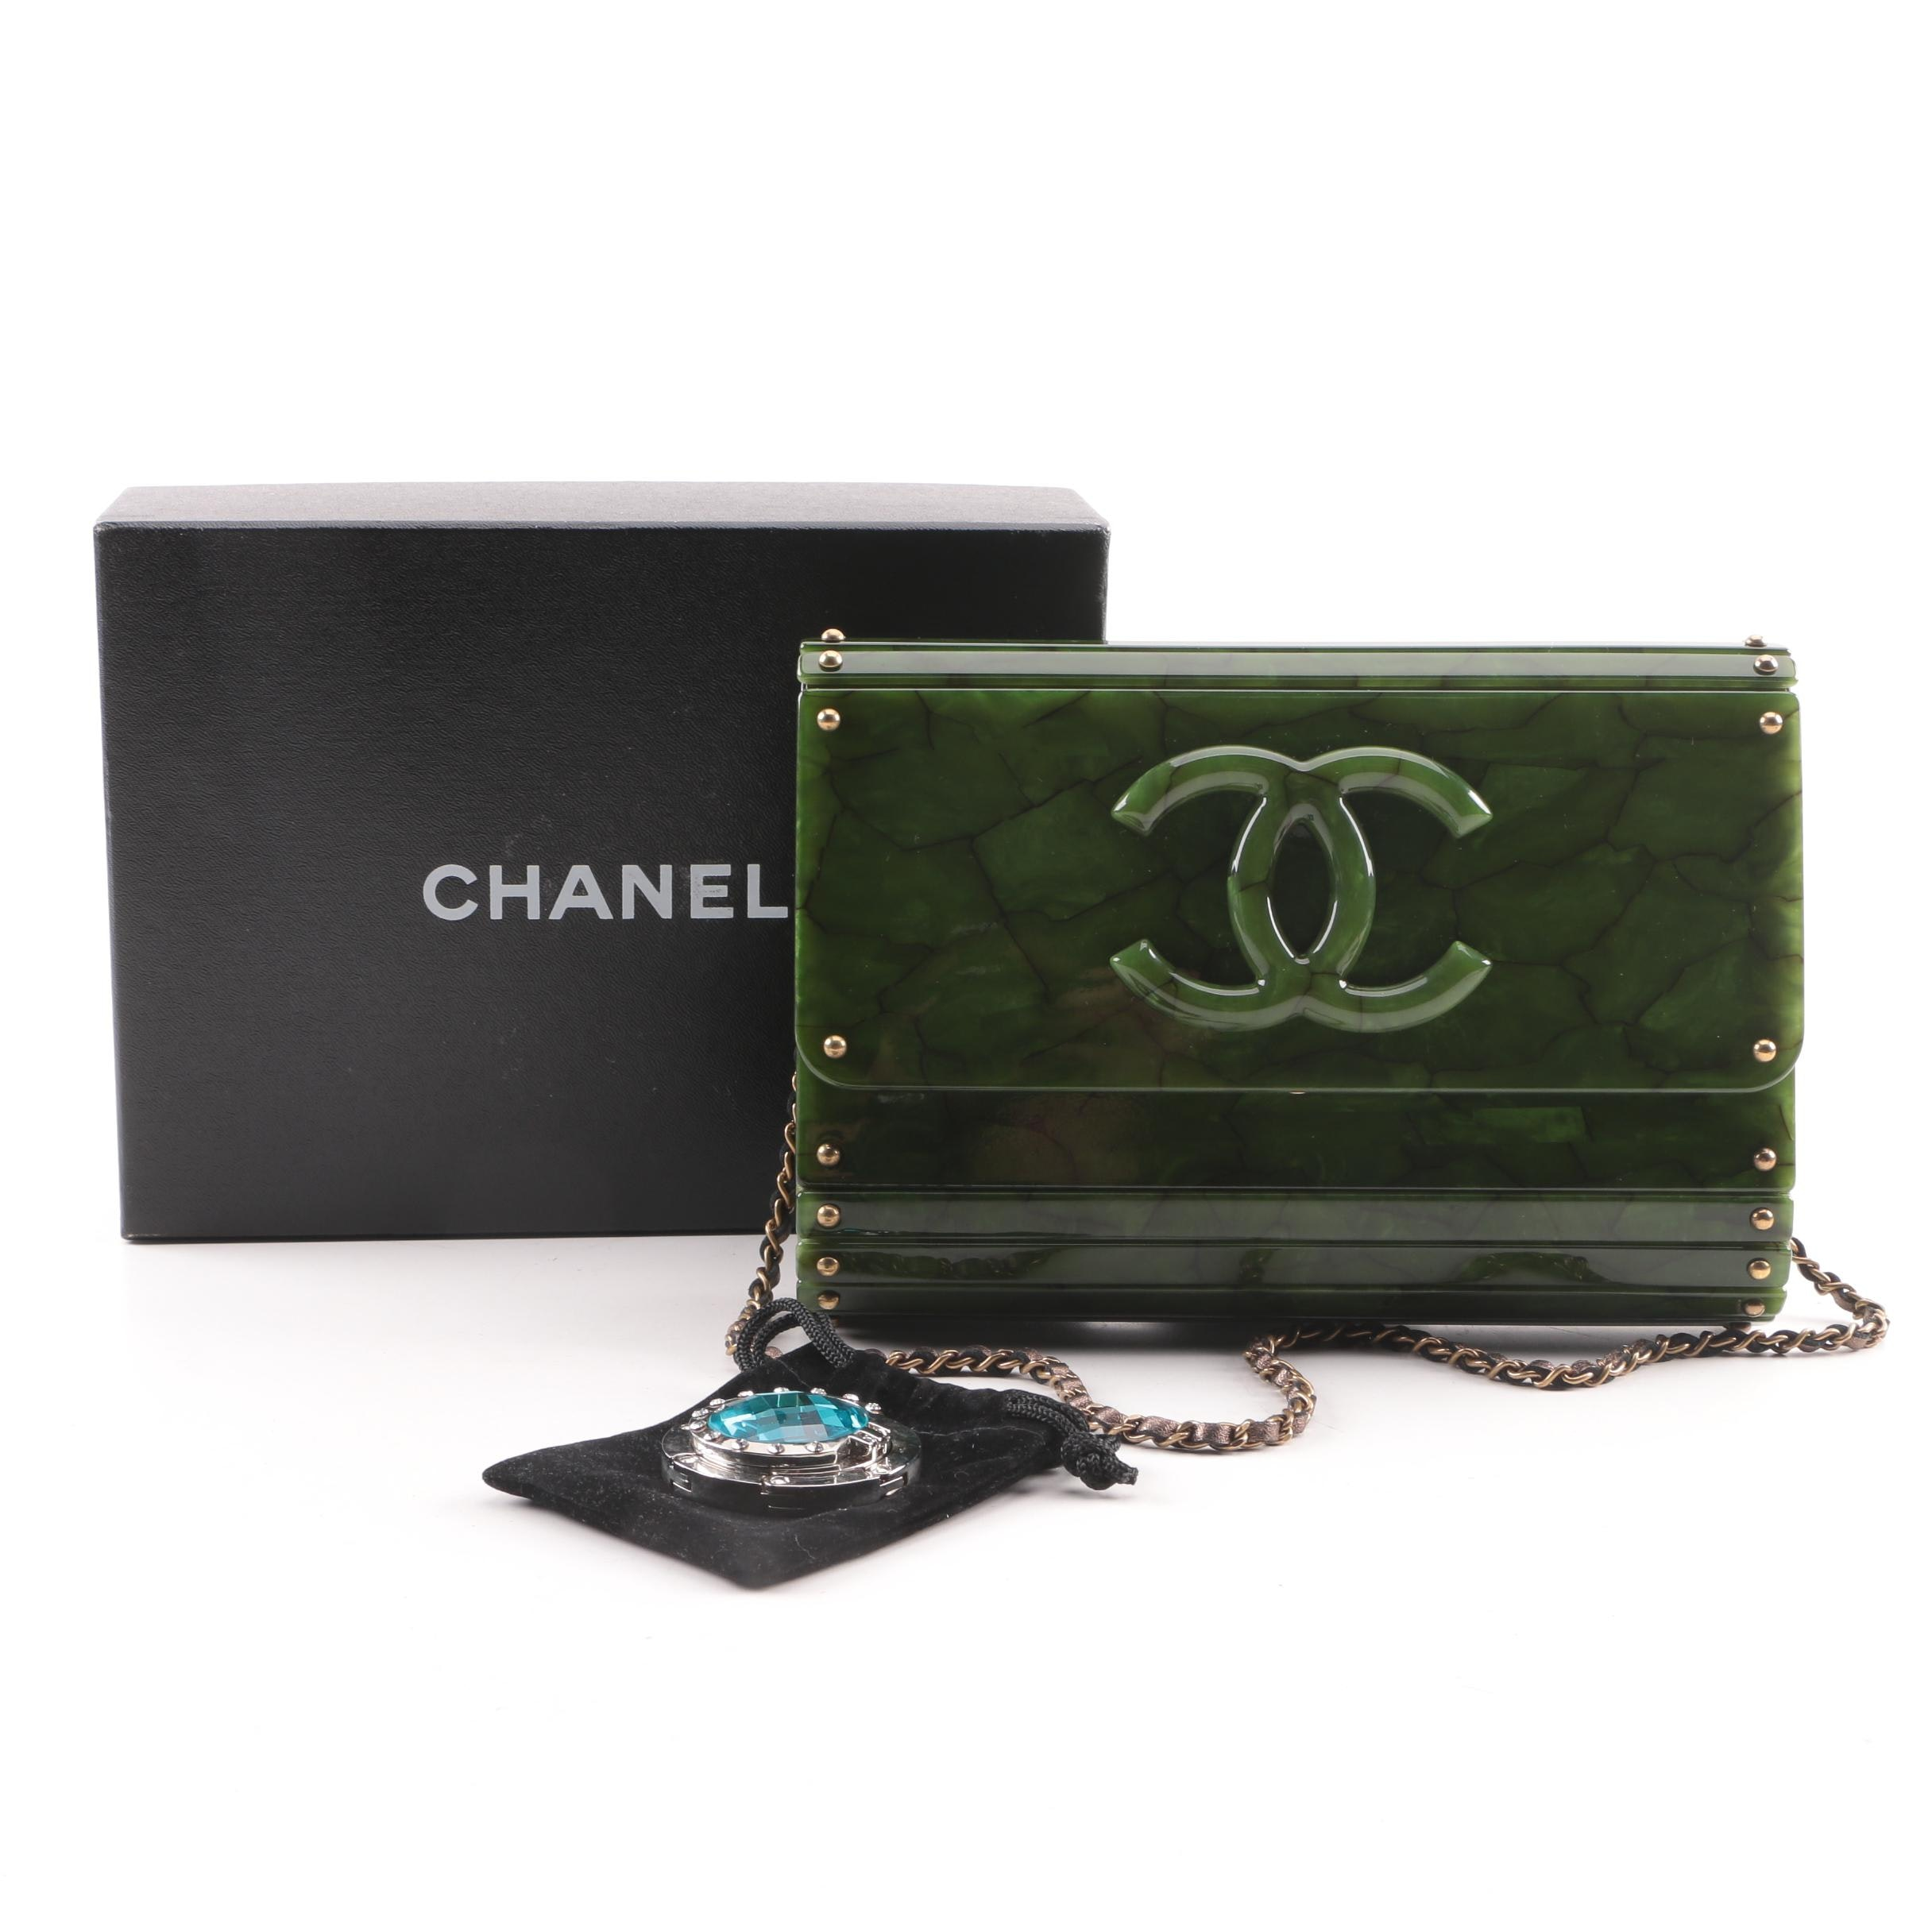 Chanel Uni Sac Classique Rabat Marbled Green Acrylic Box Bag